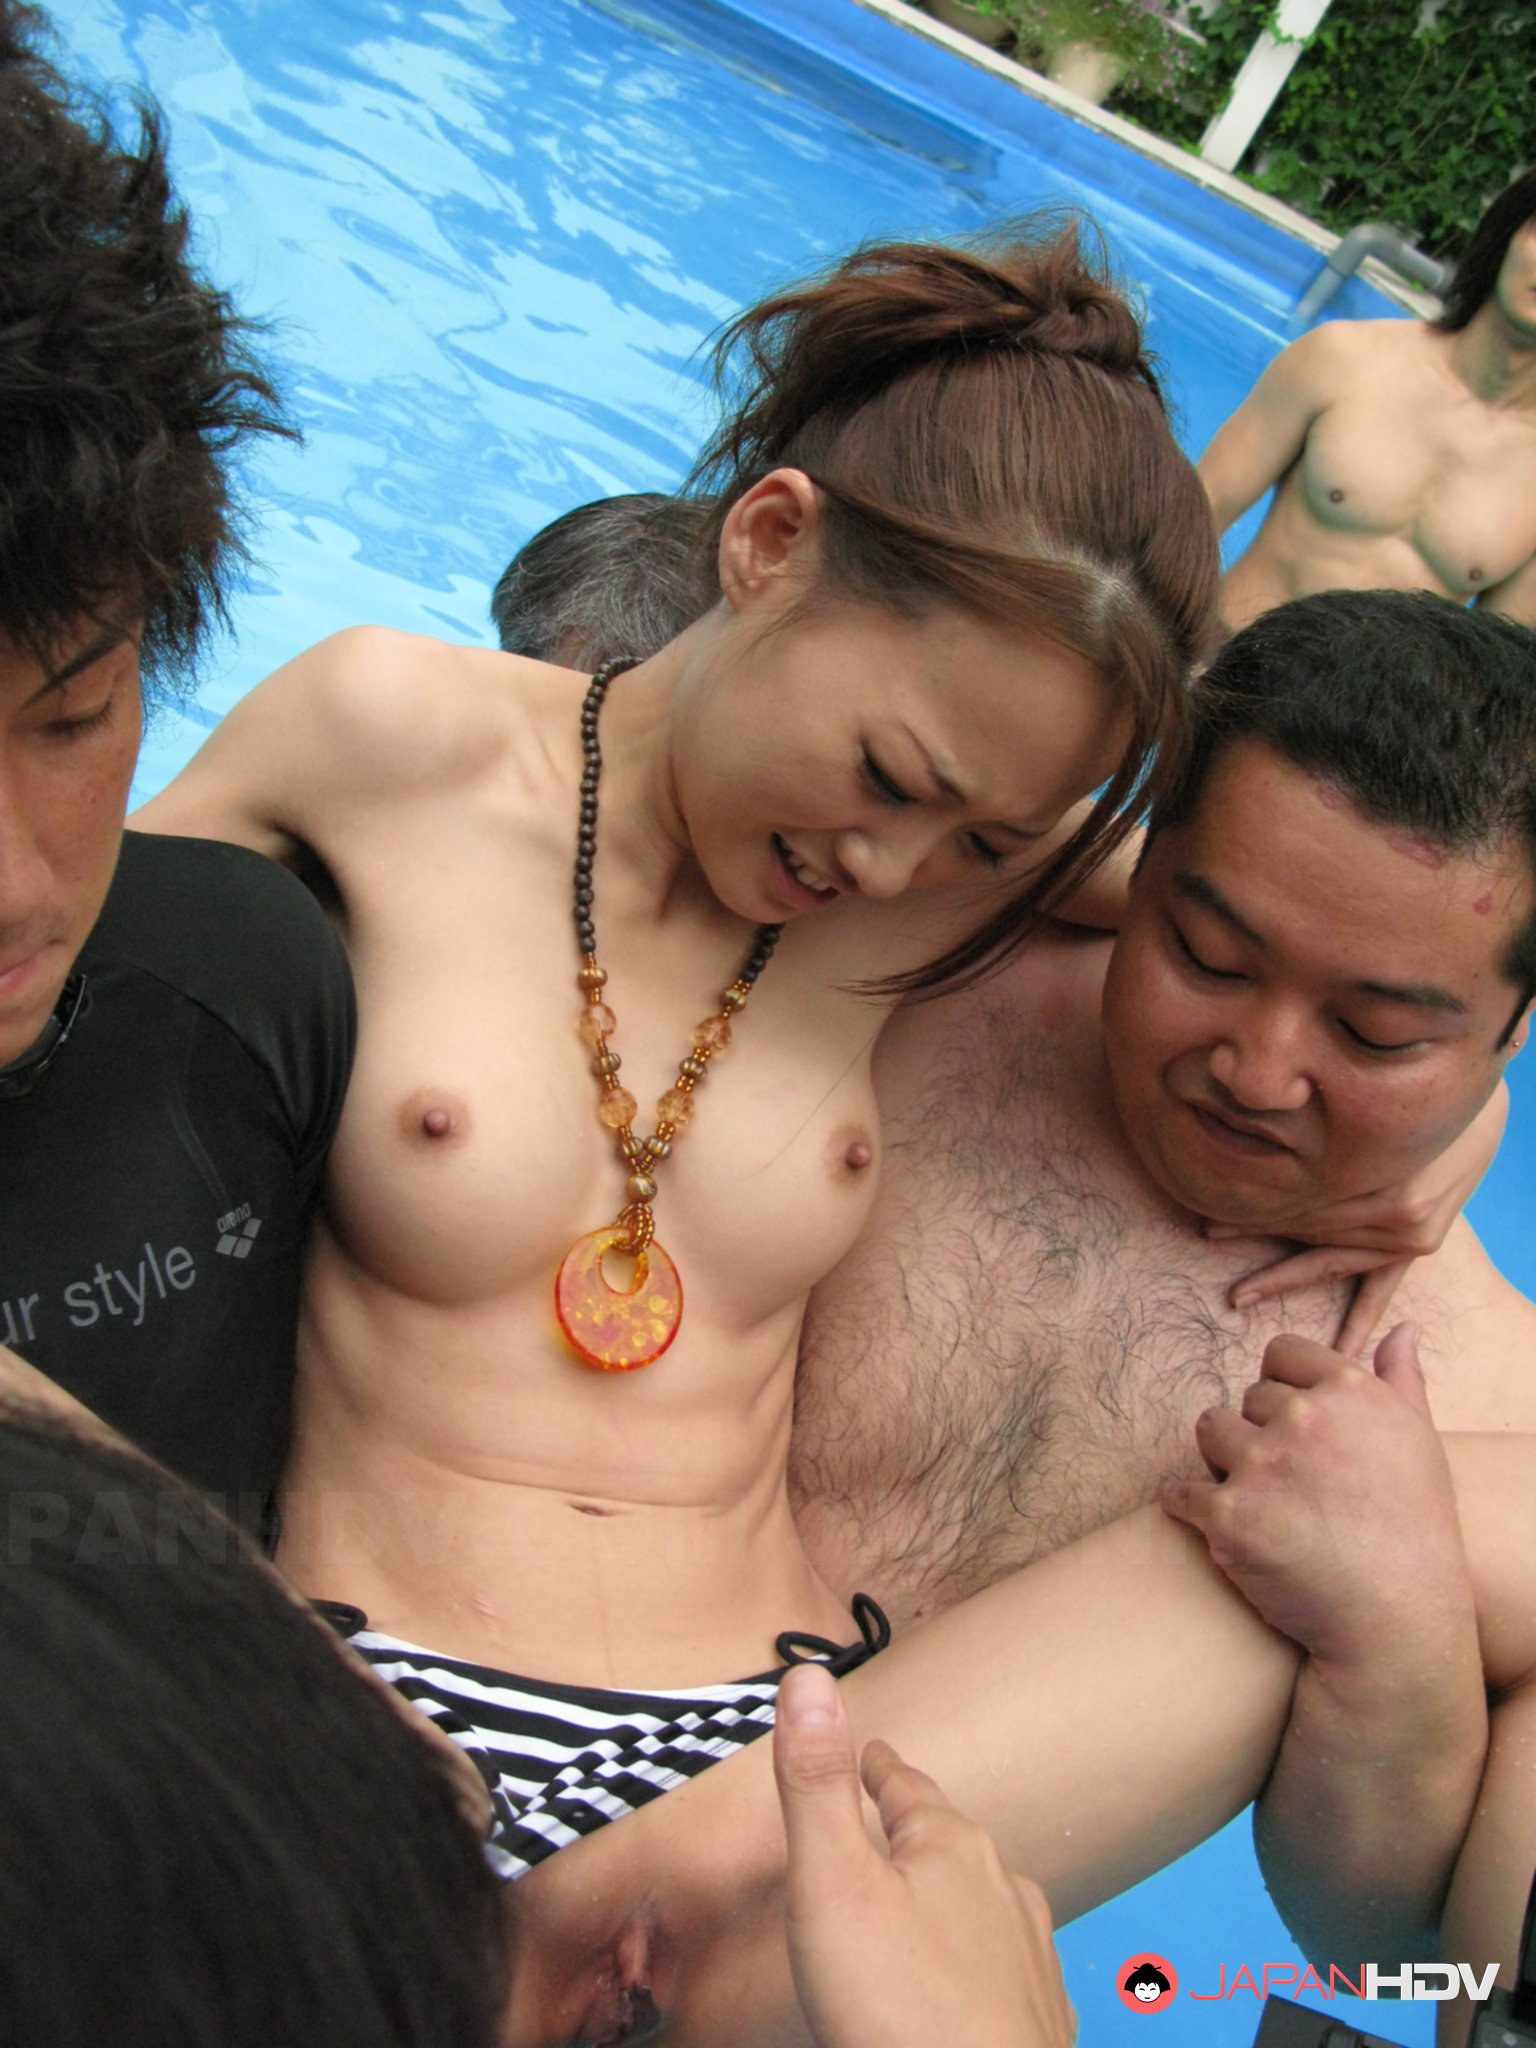 You Nude wife at pool party authoritative point